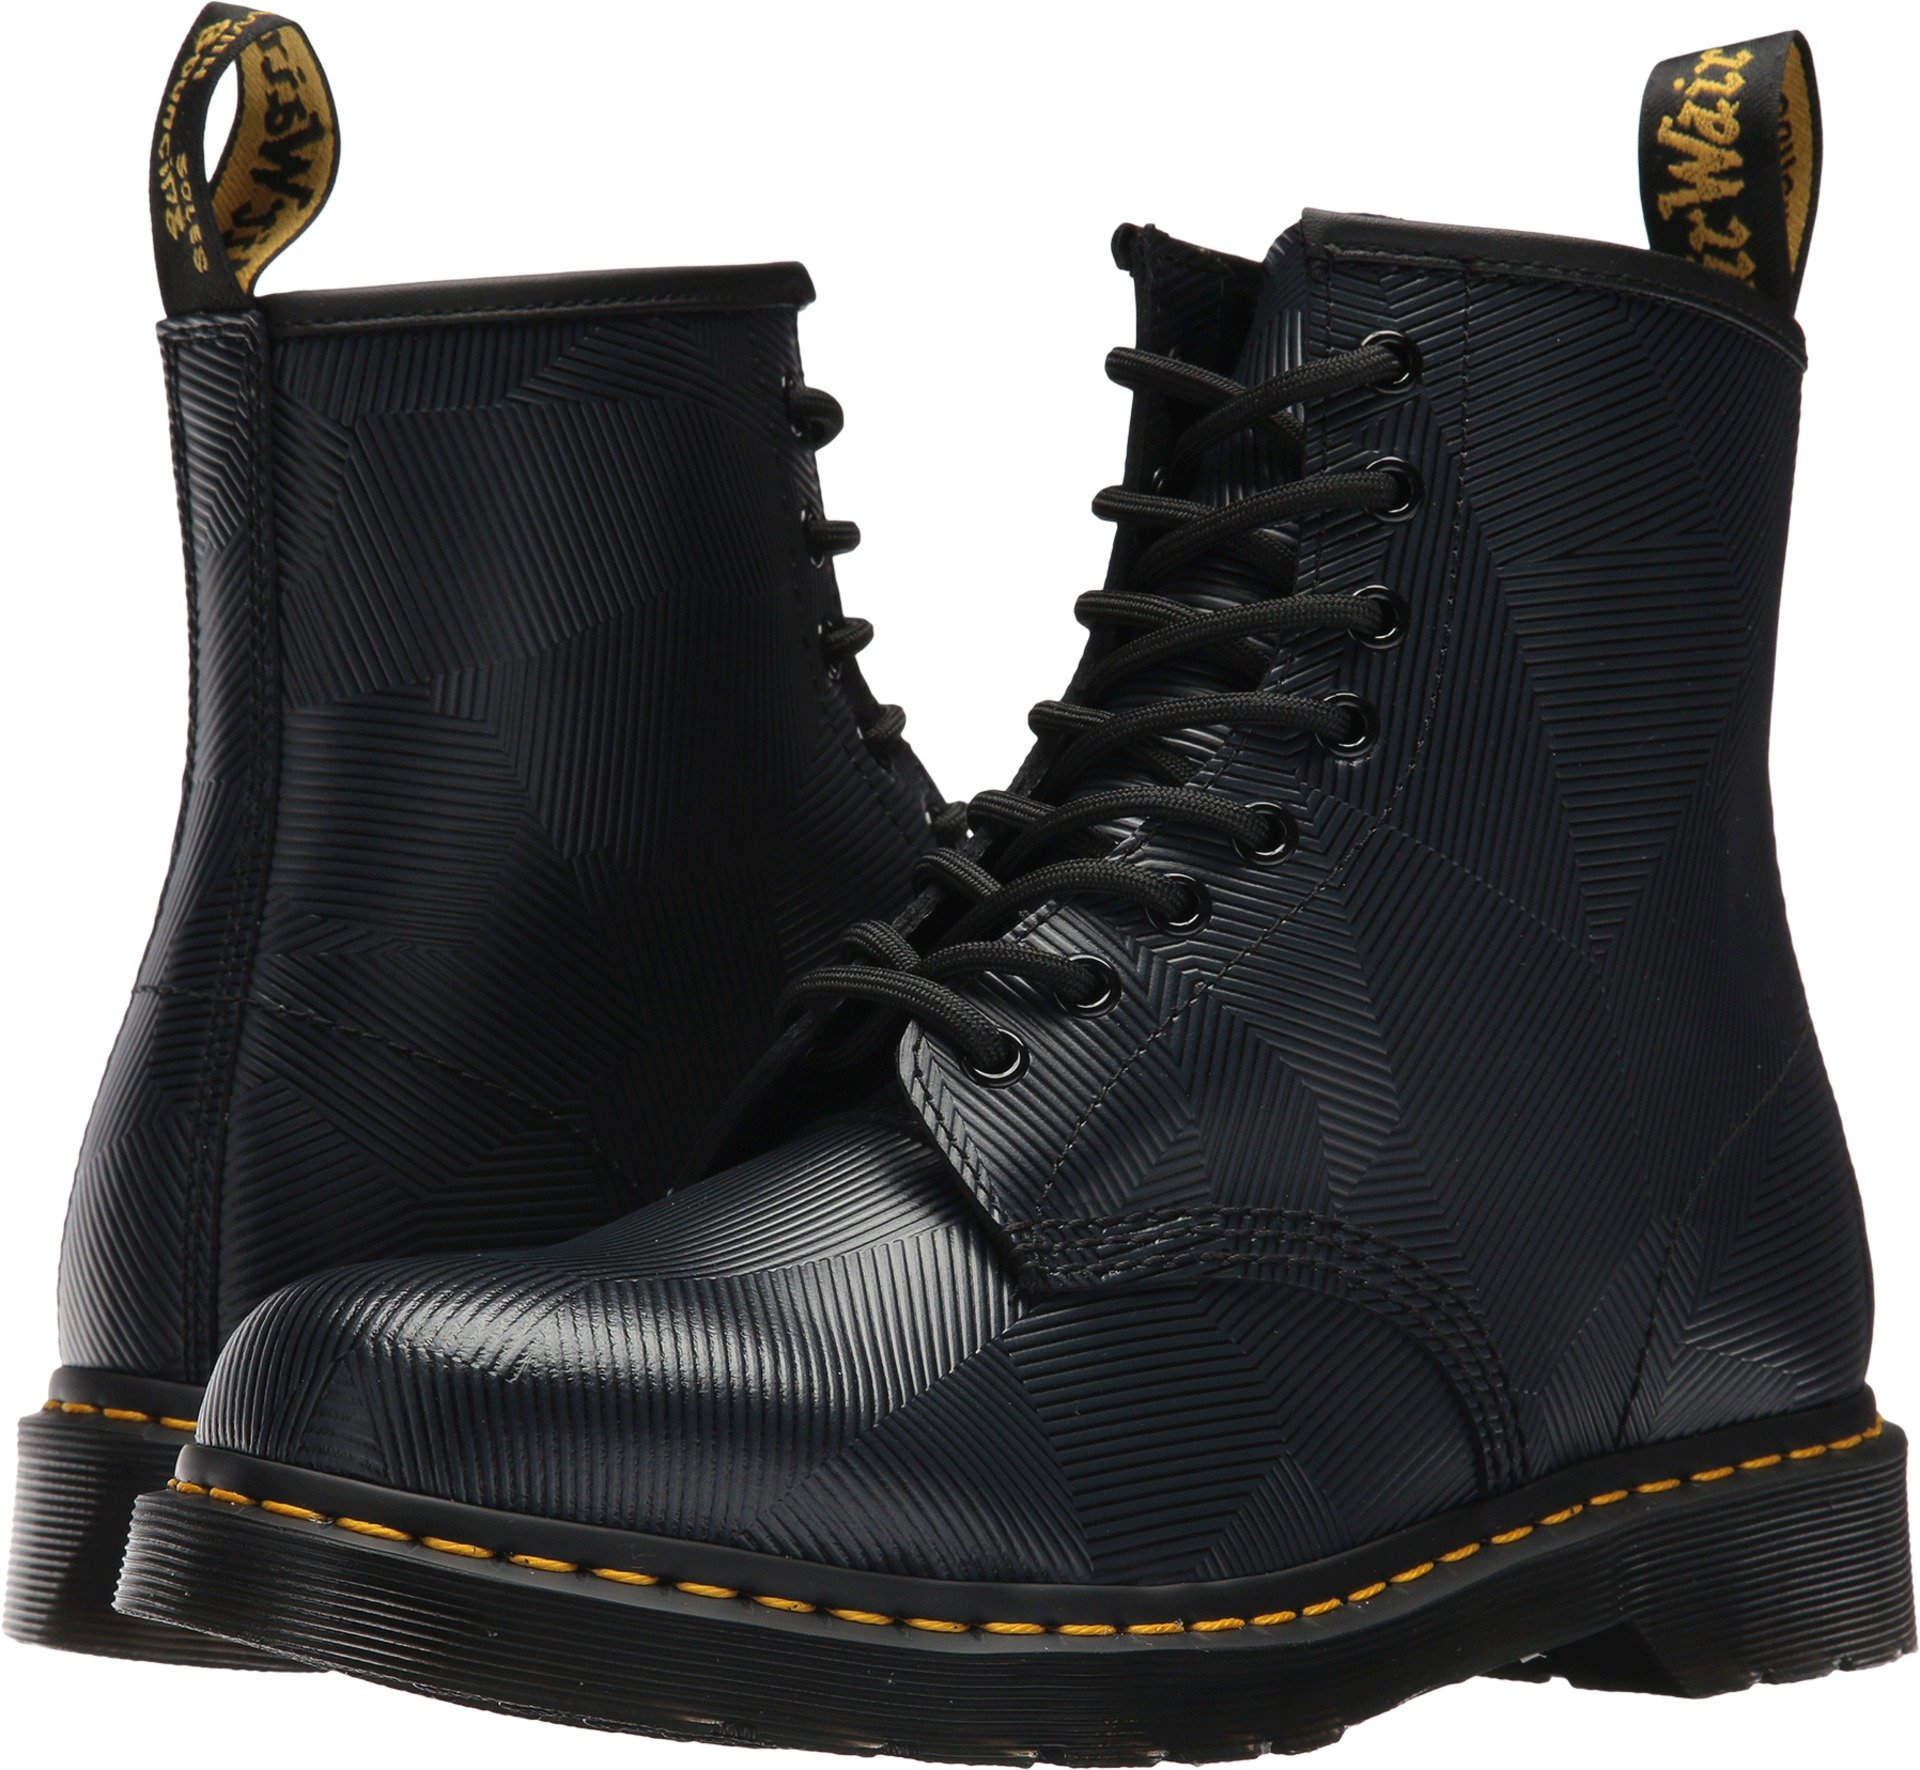 Dr. Martens 1460, Charcoal Geostripe, 9 M UK (Women's 11, Men's 10 US) by Dr. Martens